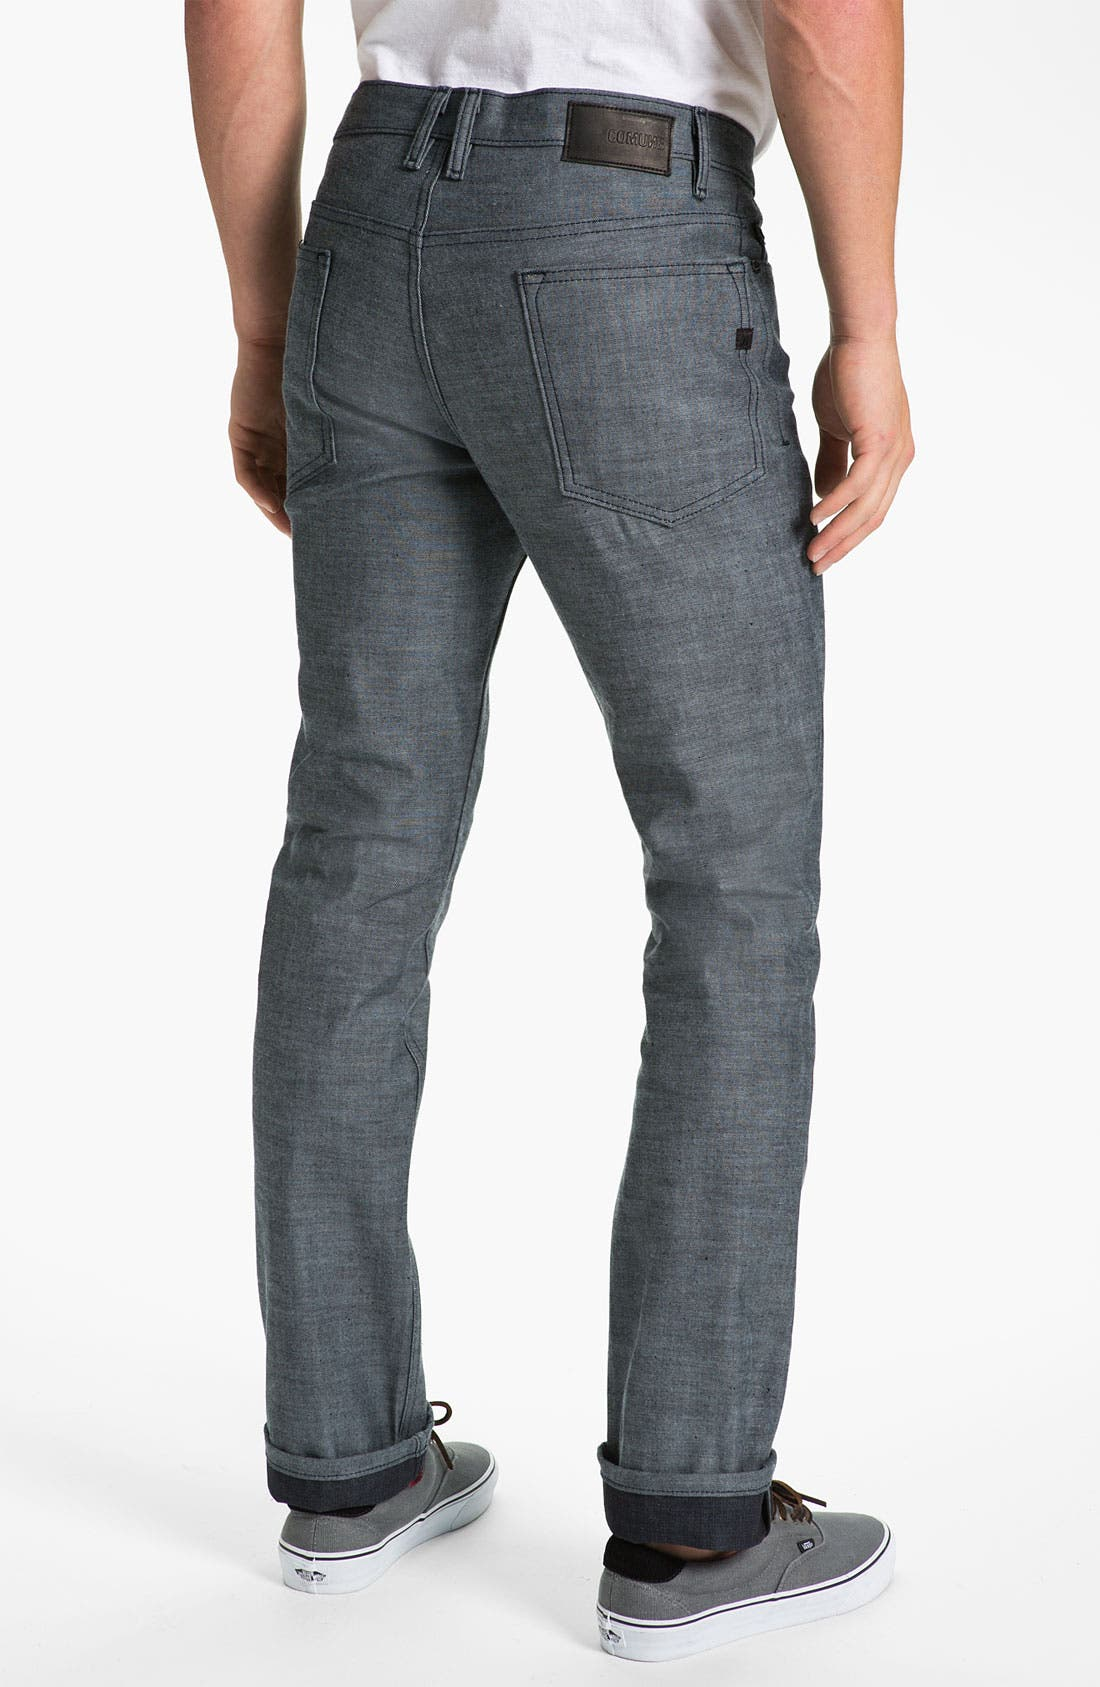 Alternate Image 1 Selected - Comune 'Ricky' Slim Straight Leg Jeans (Speckled Backside of Indigo)